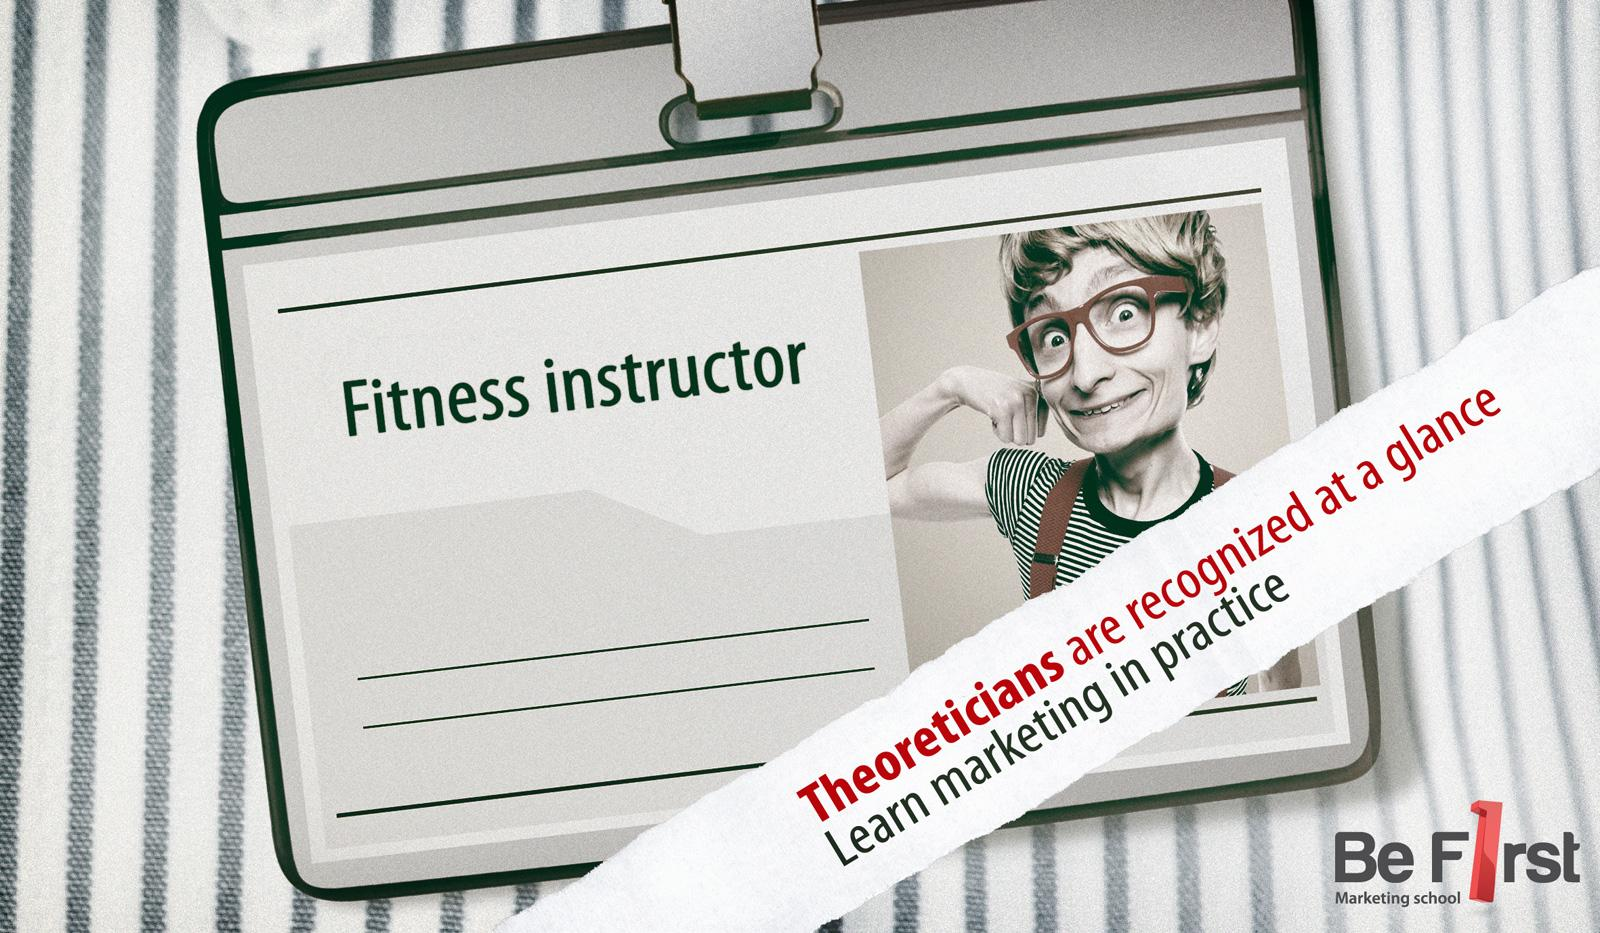 Be first Print Ad -  Fitness instructor